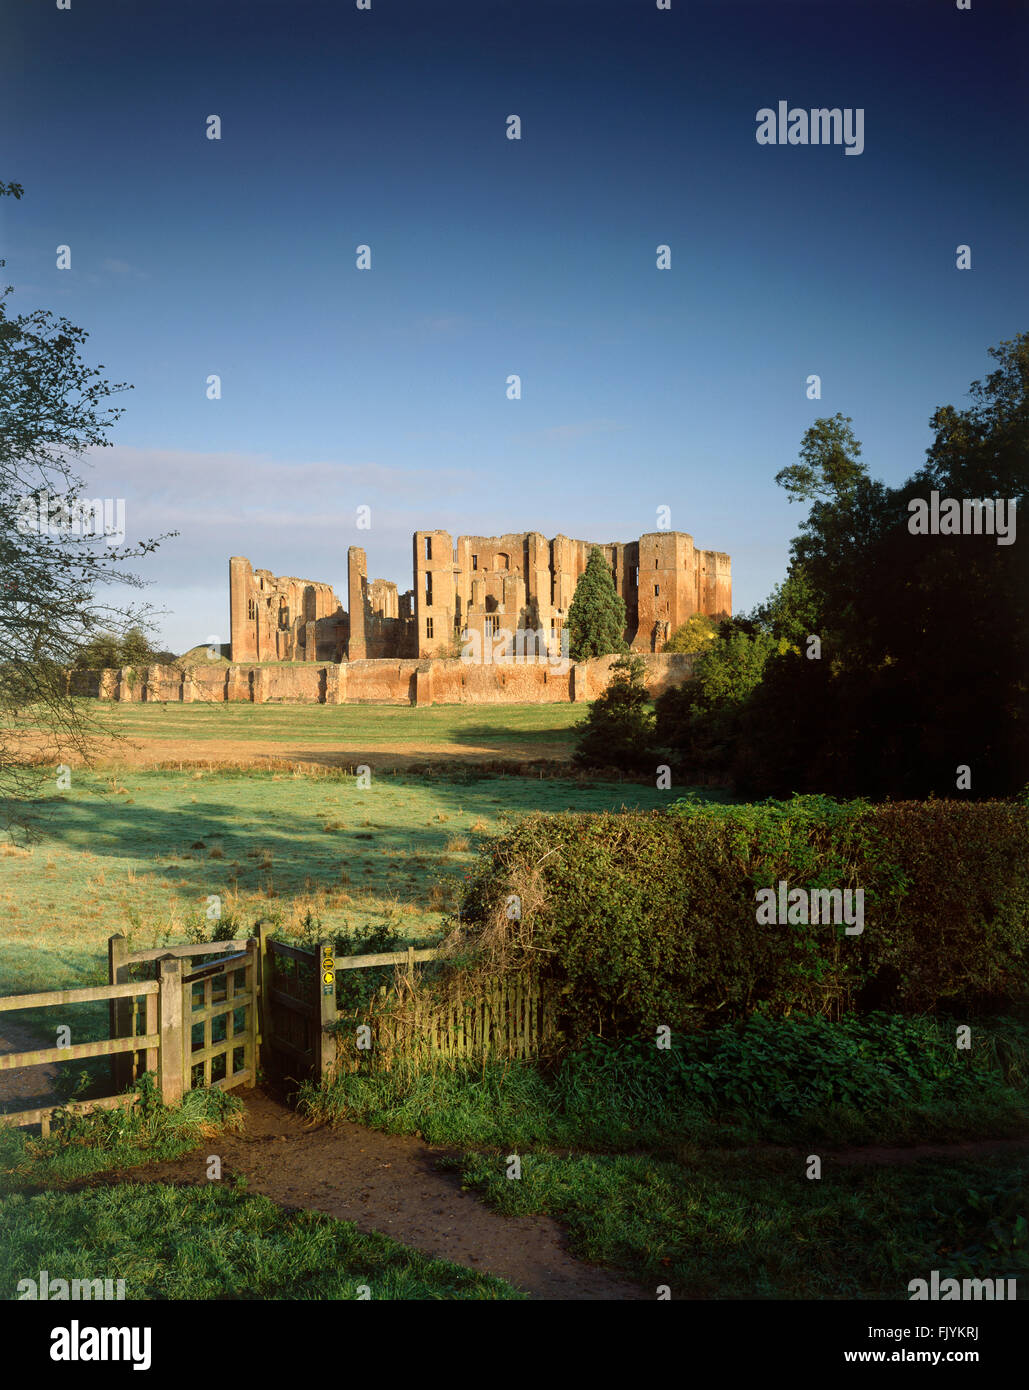 KENILWORTH CASTLE, Warwickshire. View across the field towards the castle, which at one time formed part of the - Stock Image